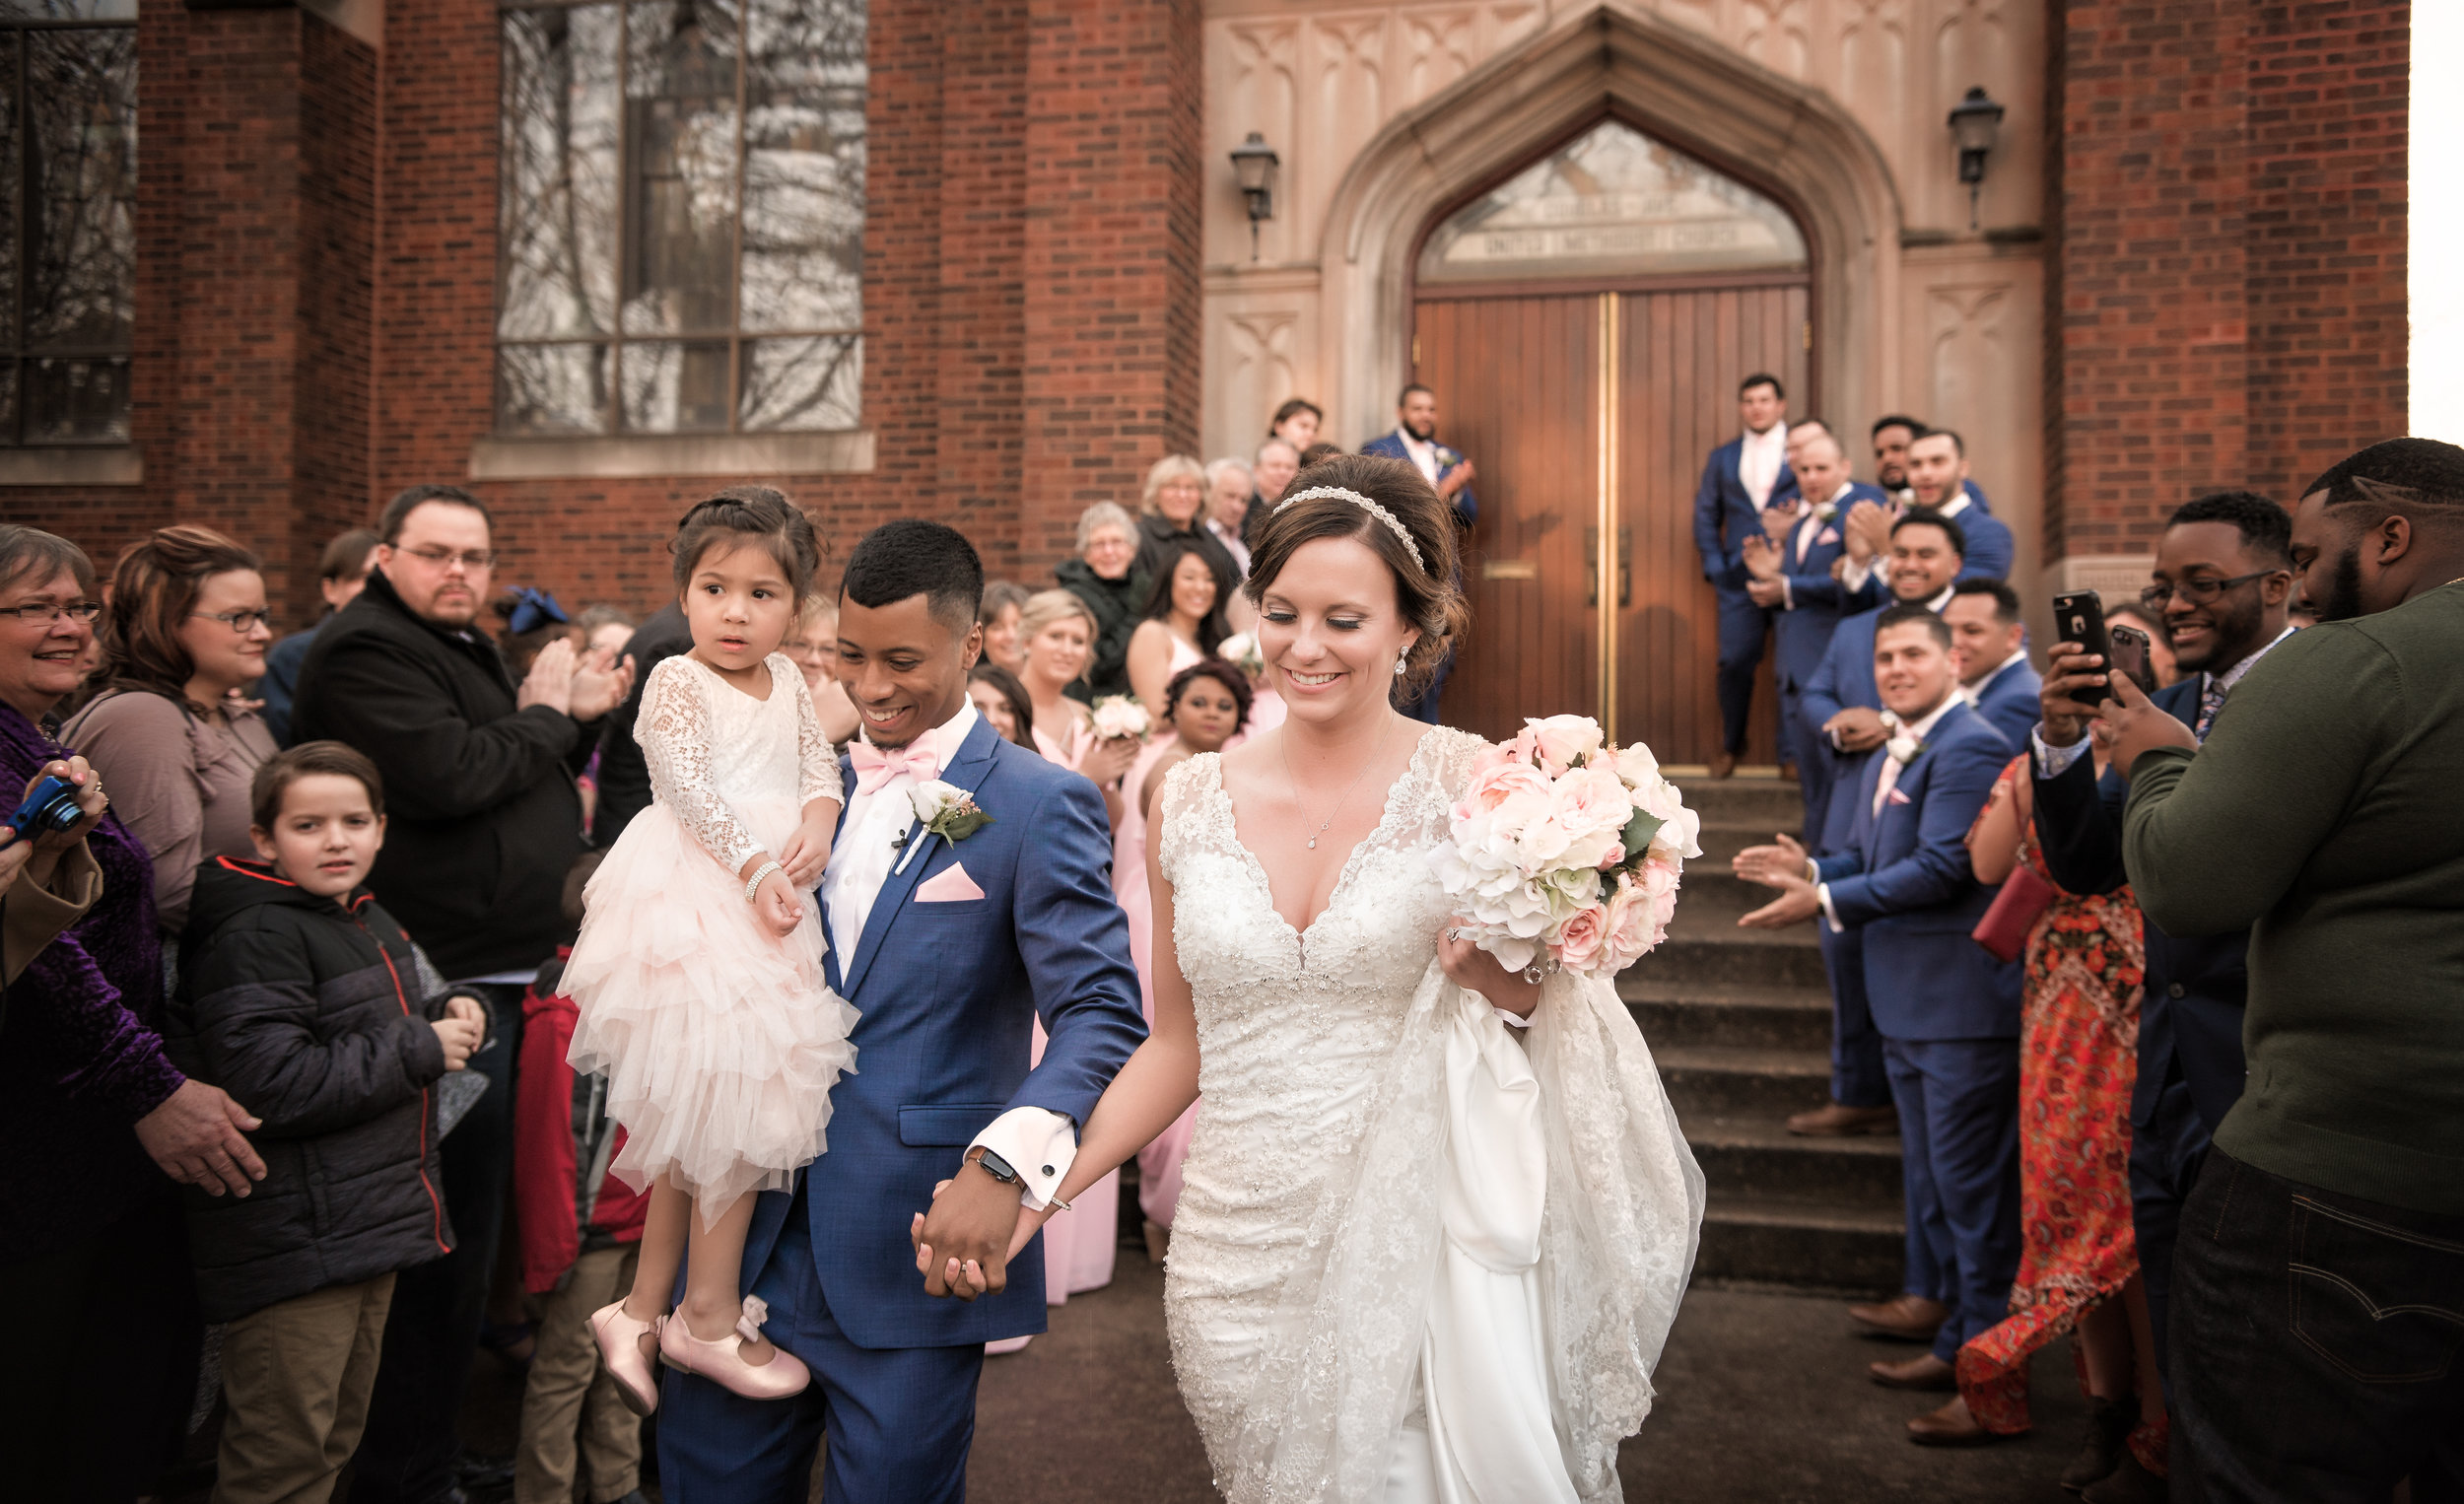 bride-groom-flower-girl-church-steps-crowd-cheering.jpg